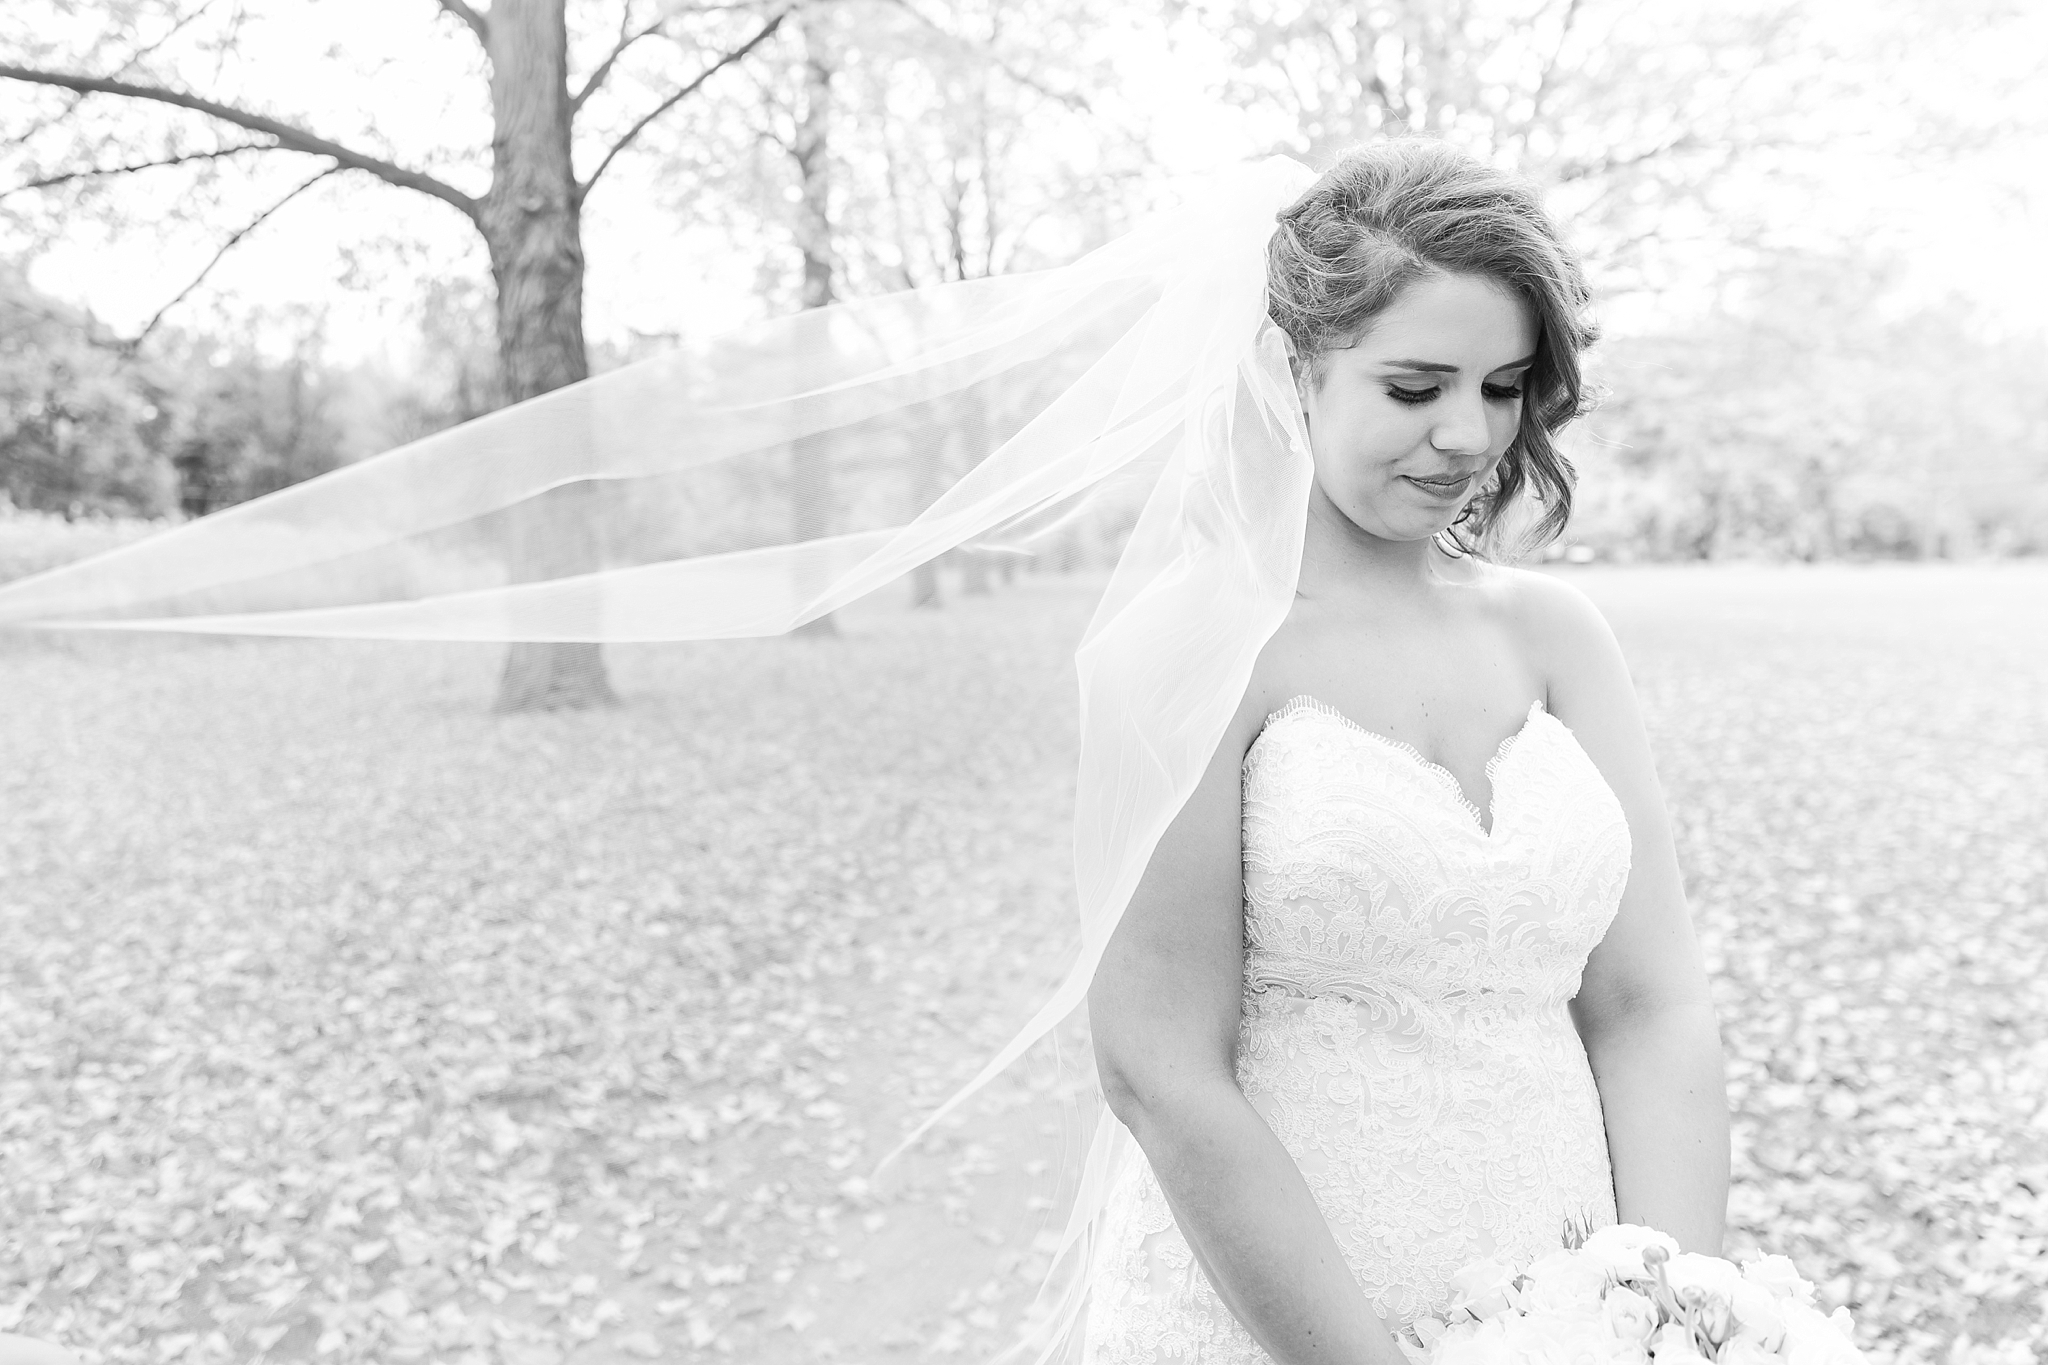 romantic-artful-candid-wedding-photos-in-detroit-lansing-ann-arbor-northern-michigan-and-chicago-by-courtney-carolyn-photography_0033.jpg